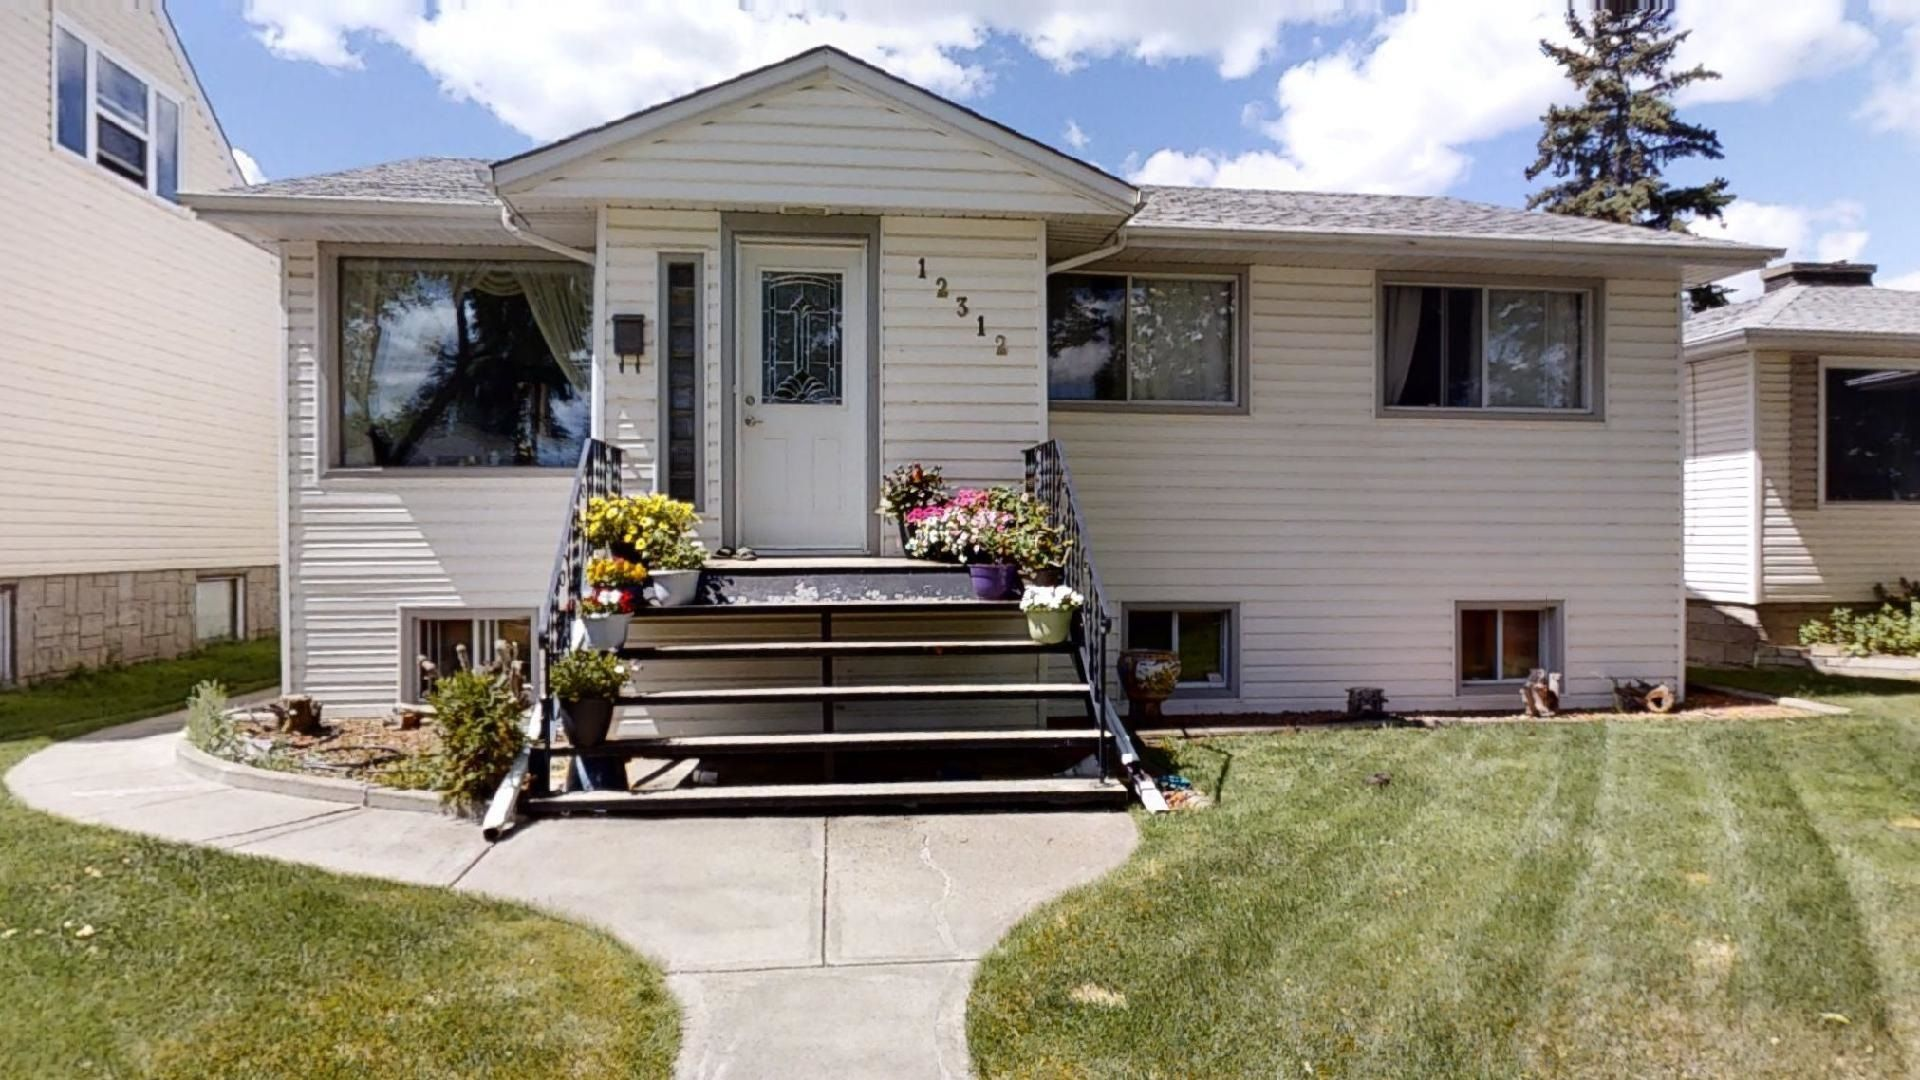 Main Photo: 12312 95A Street in Edmonton: Zone 05 House for sale : MLS®# E4264209